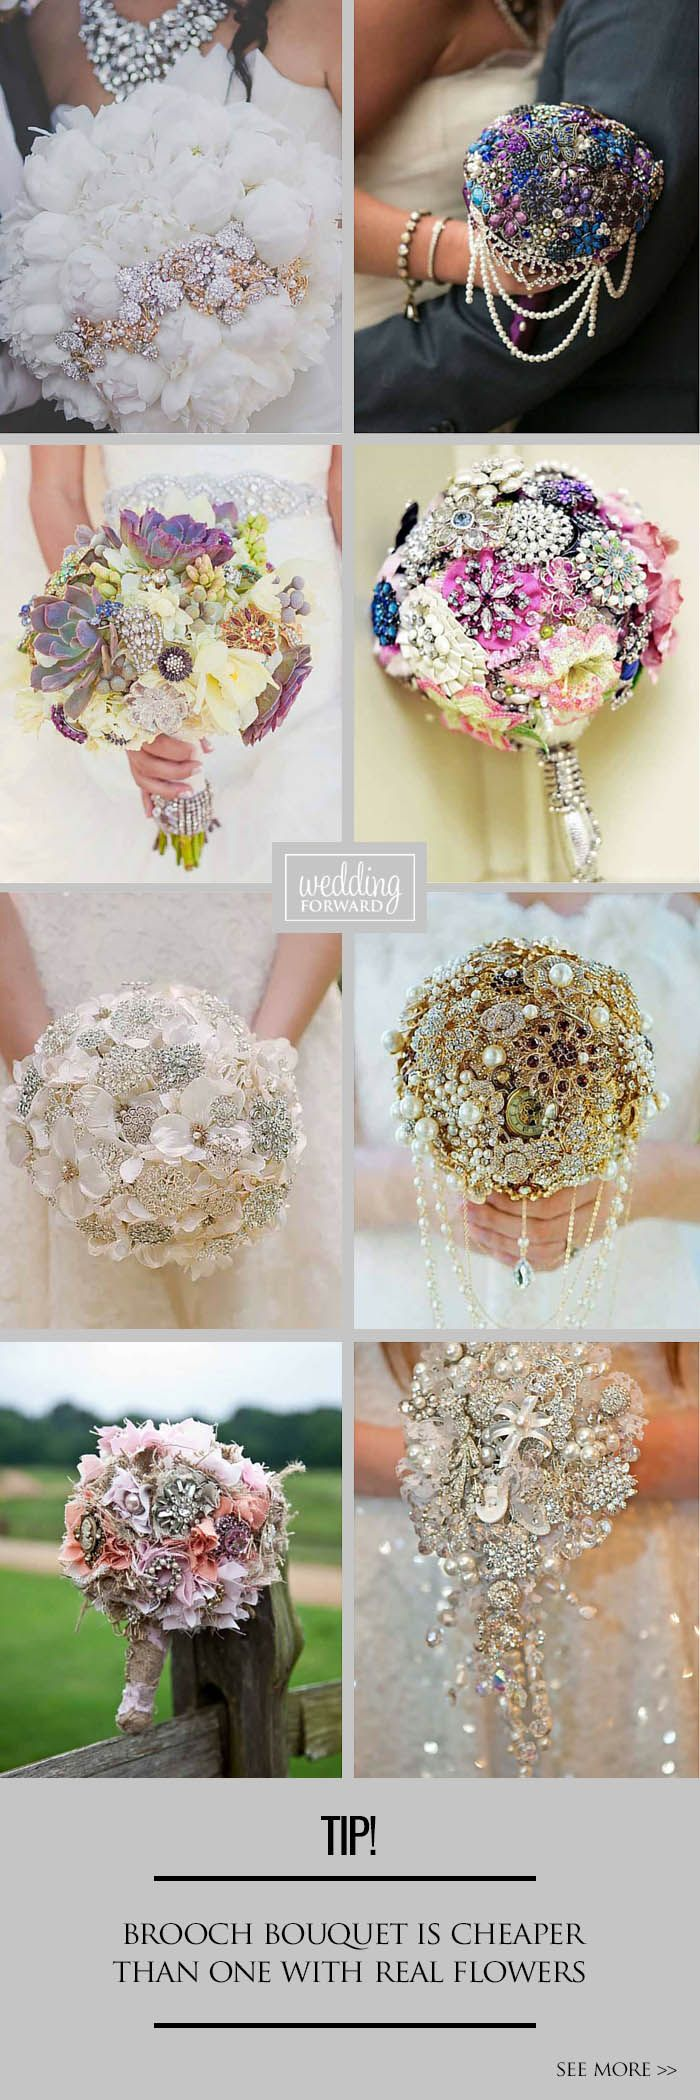 24 Brooch Wedding Bouquets That Will Excite You Pinterest Fresh